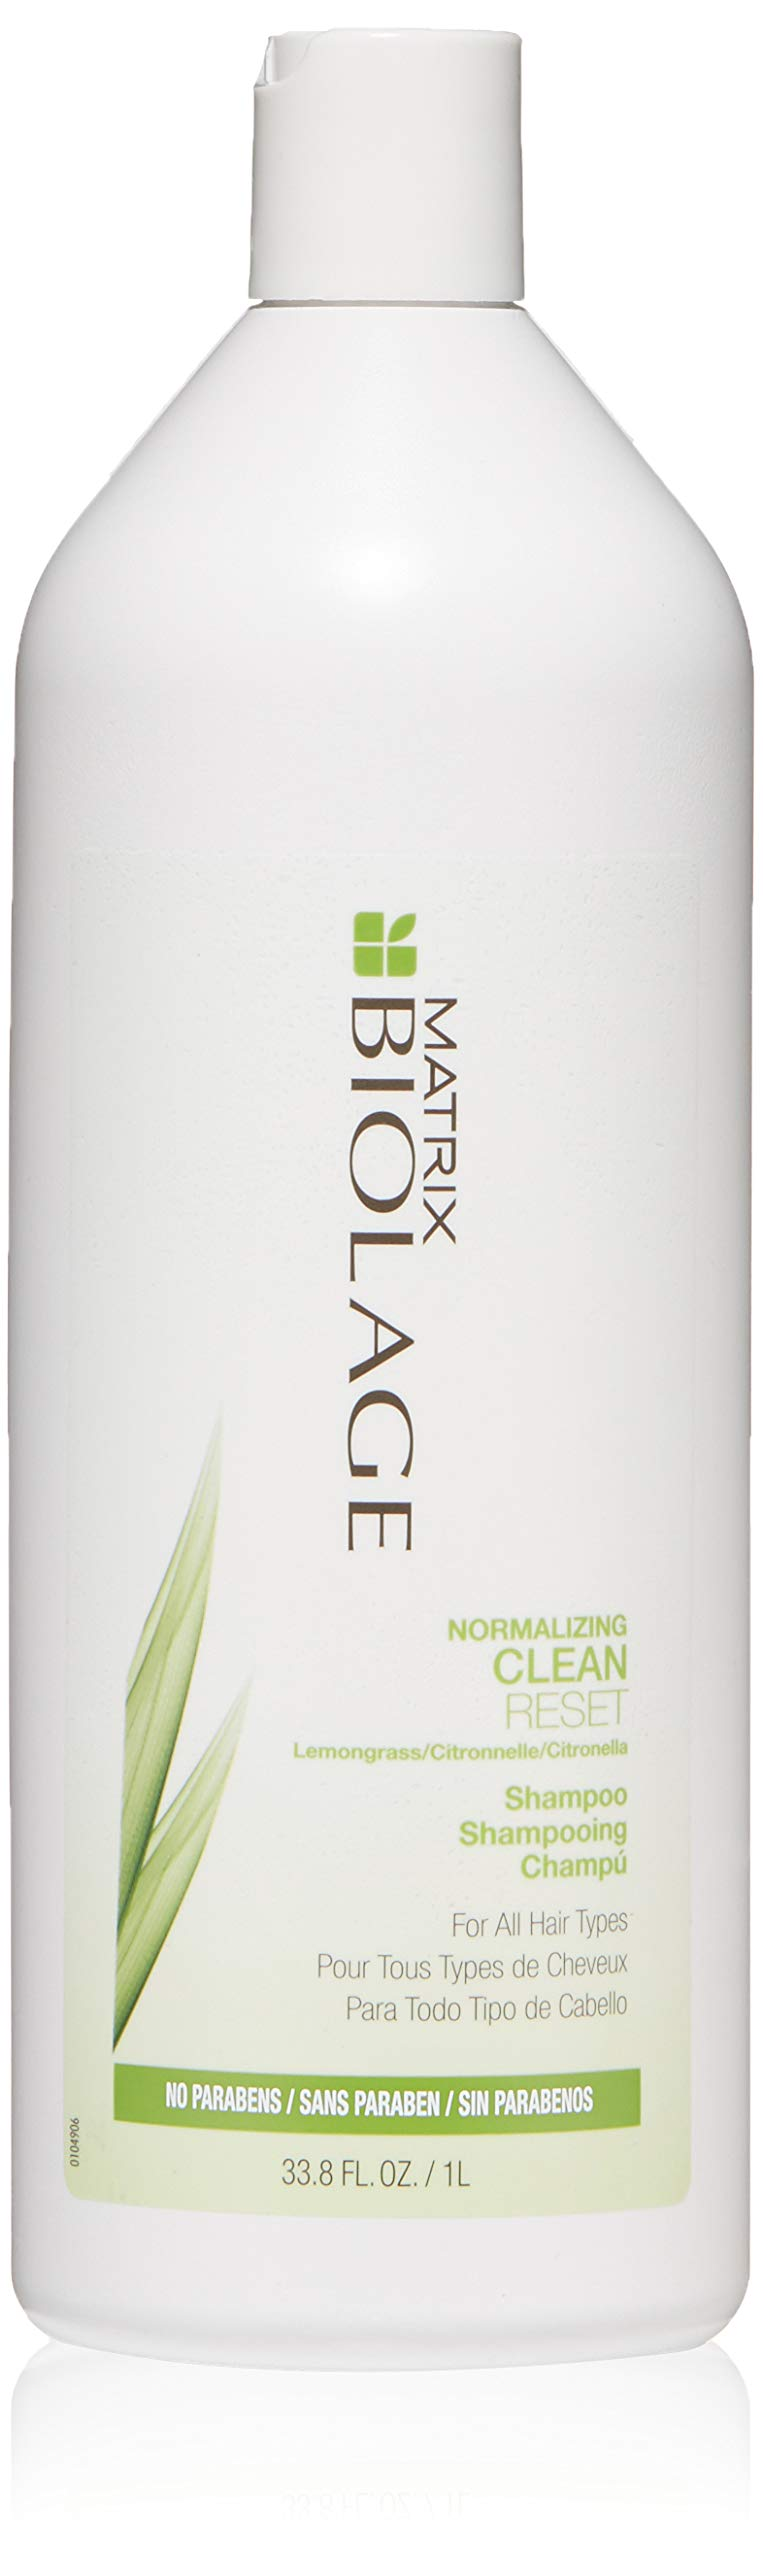 BIOLAGE Cleanreset Normalizing Shampoo To Remove Buildup, 33.8 Fl. Oz.